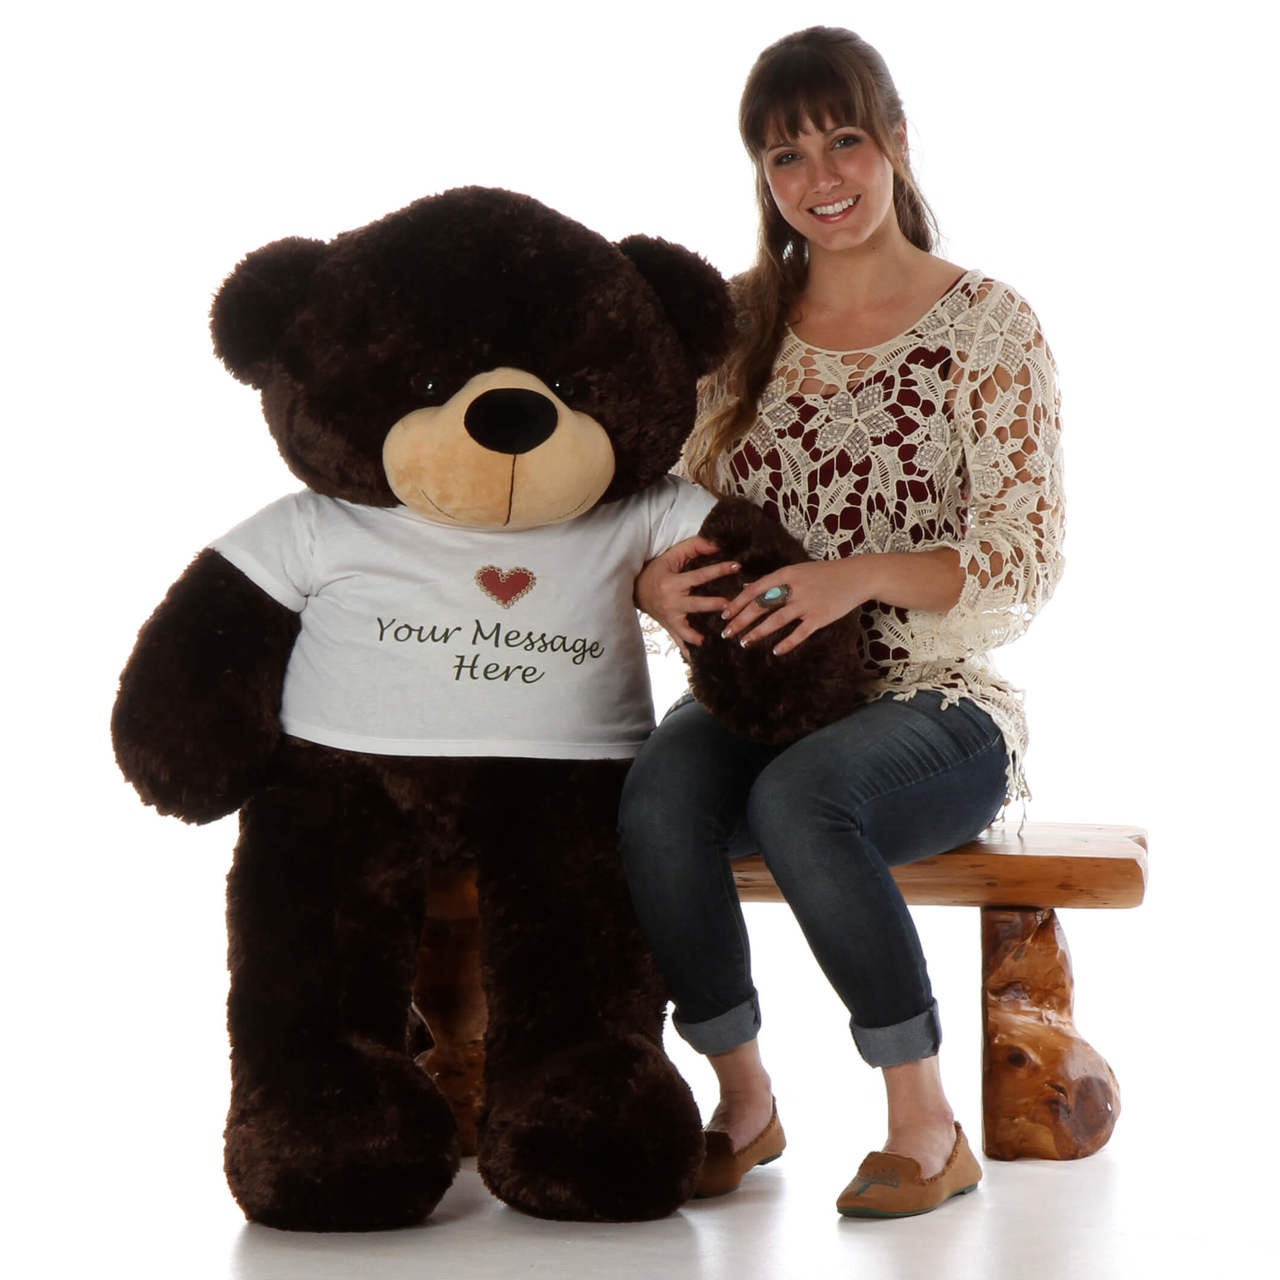 4ft Cutest Big Teddy Bear Hugs from Brownie CuddlesPersonalized Giant Teddy Bear!